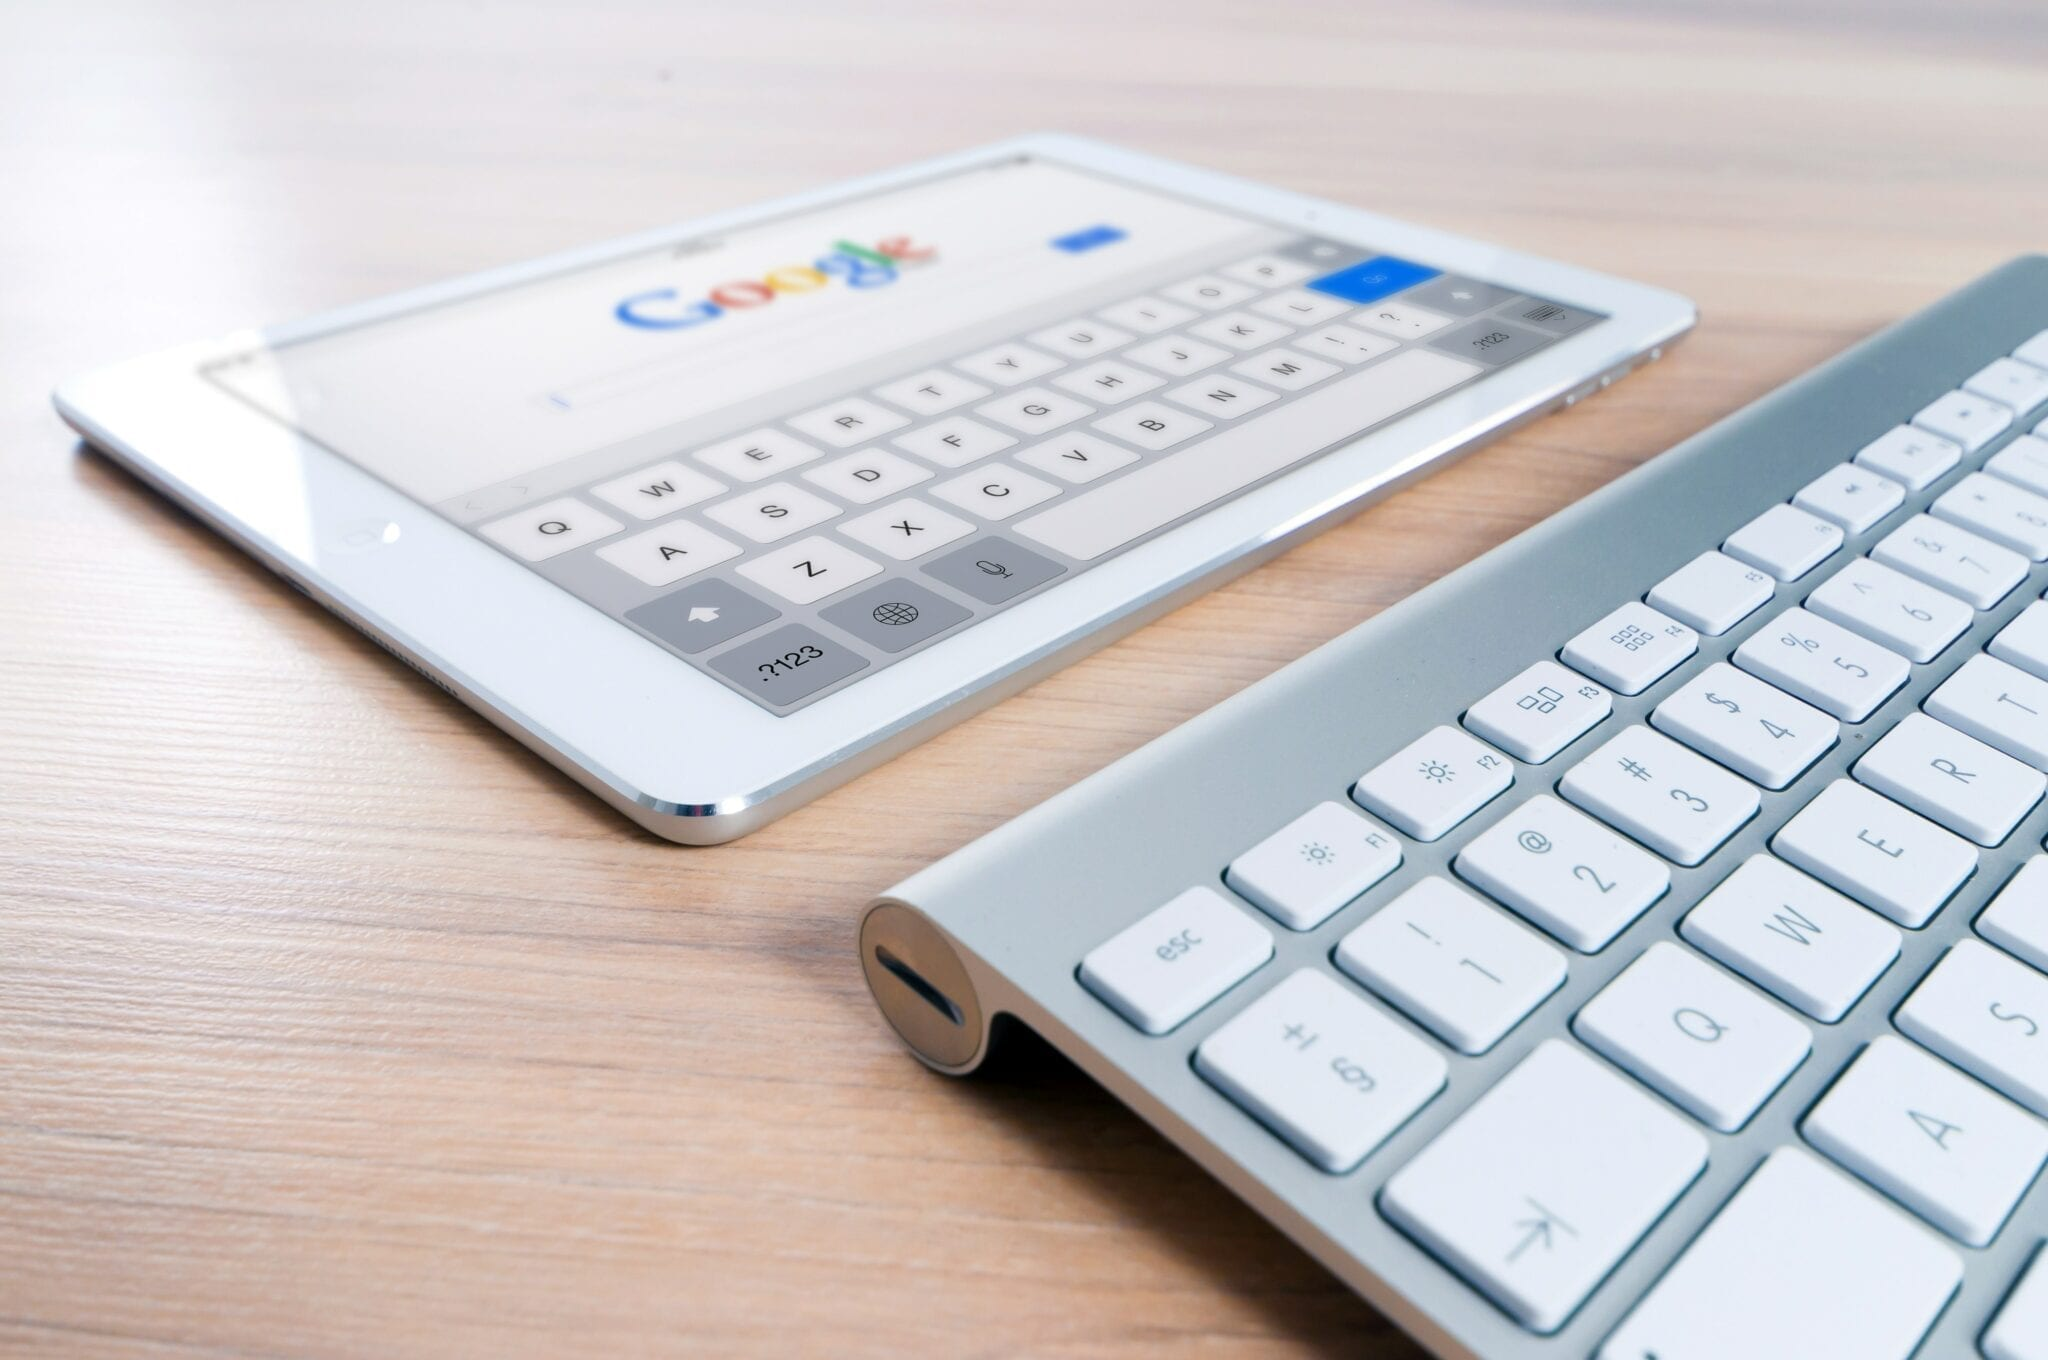 seo marketing near me tablet and keyboard